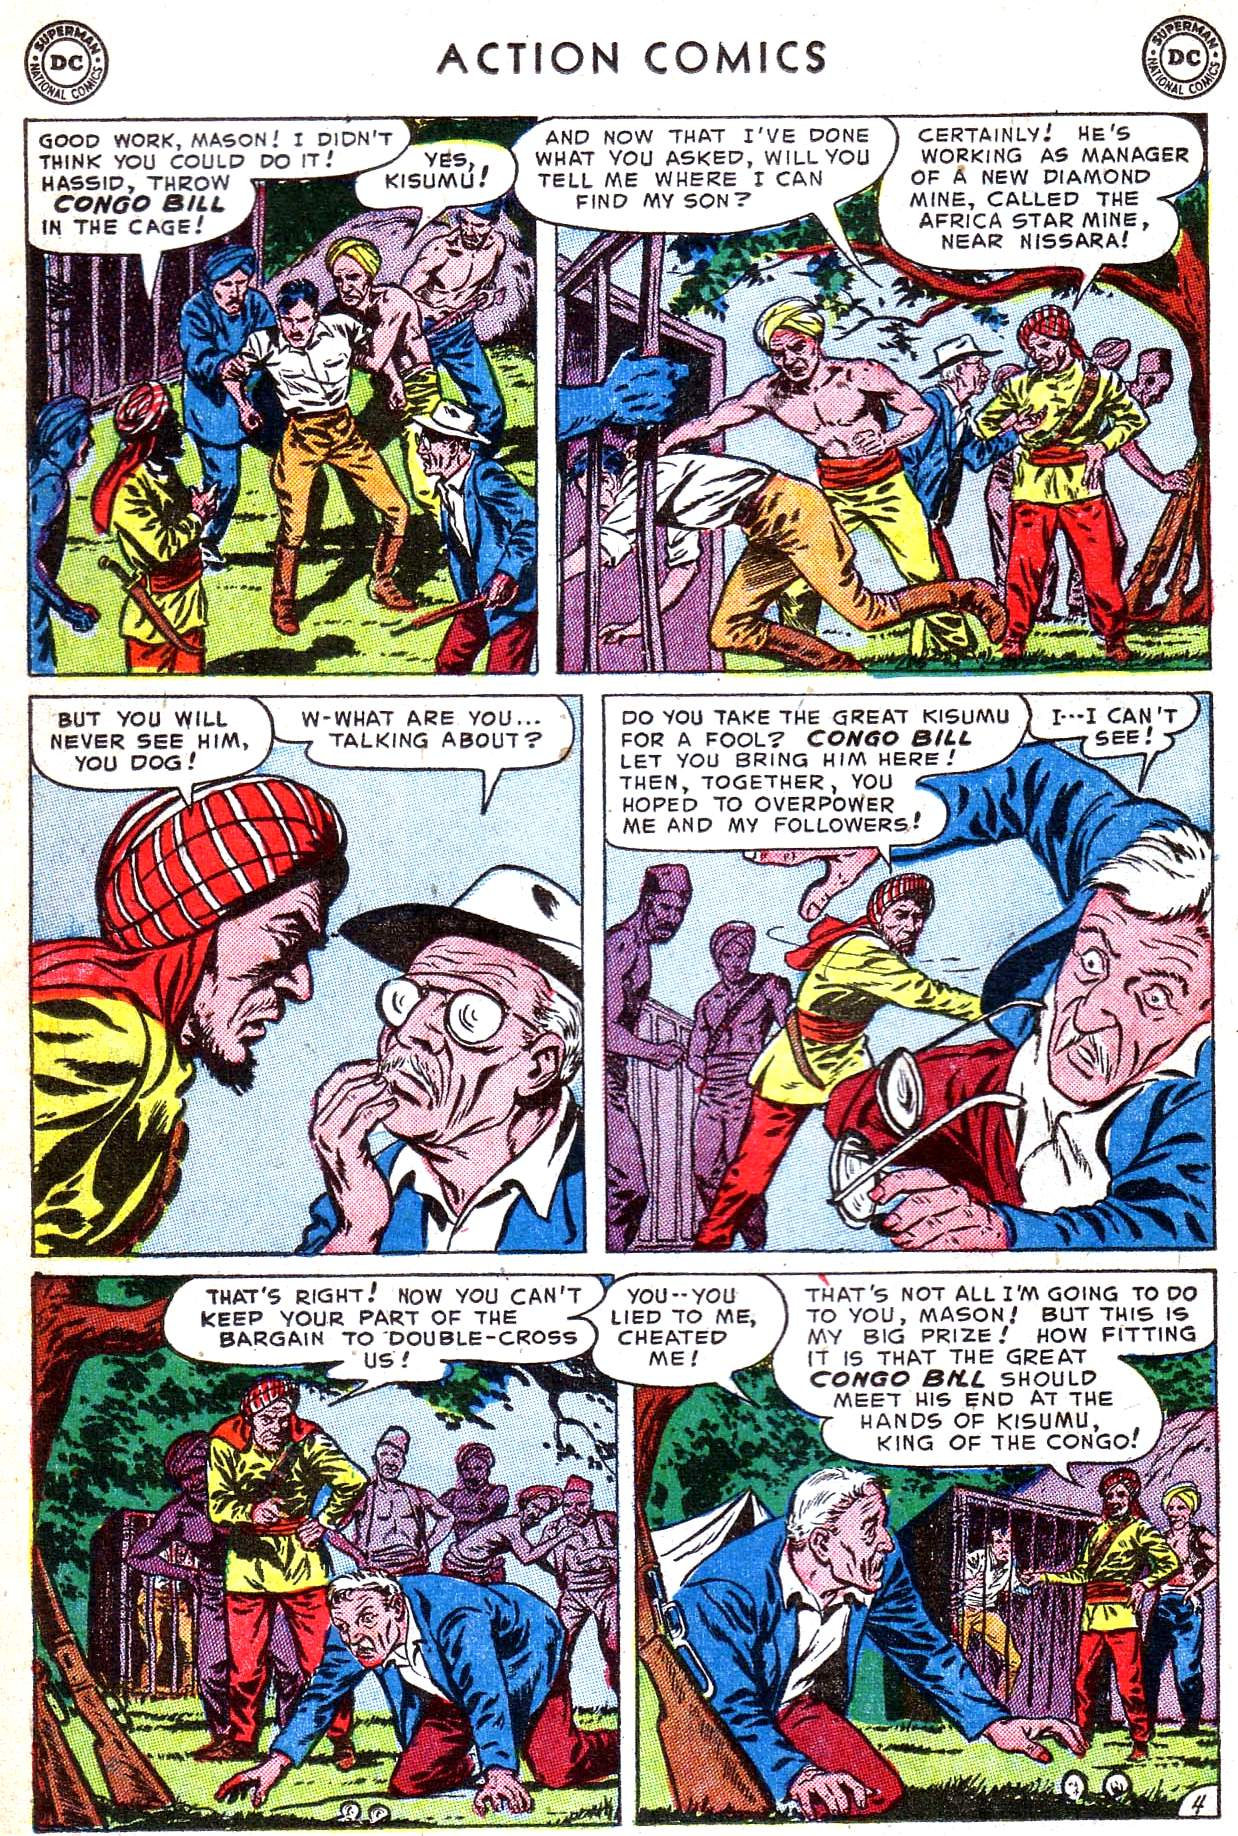 Action Comics (1938) 180 Page 19